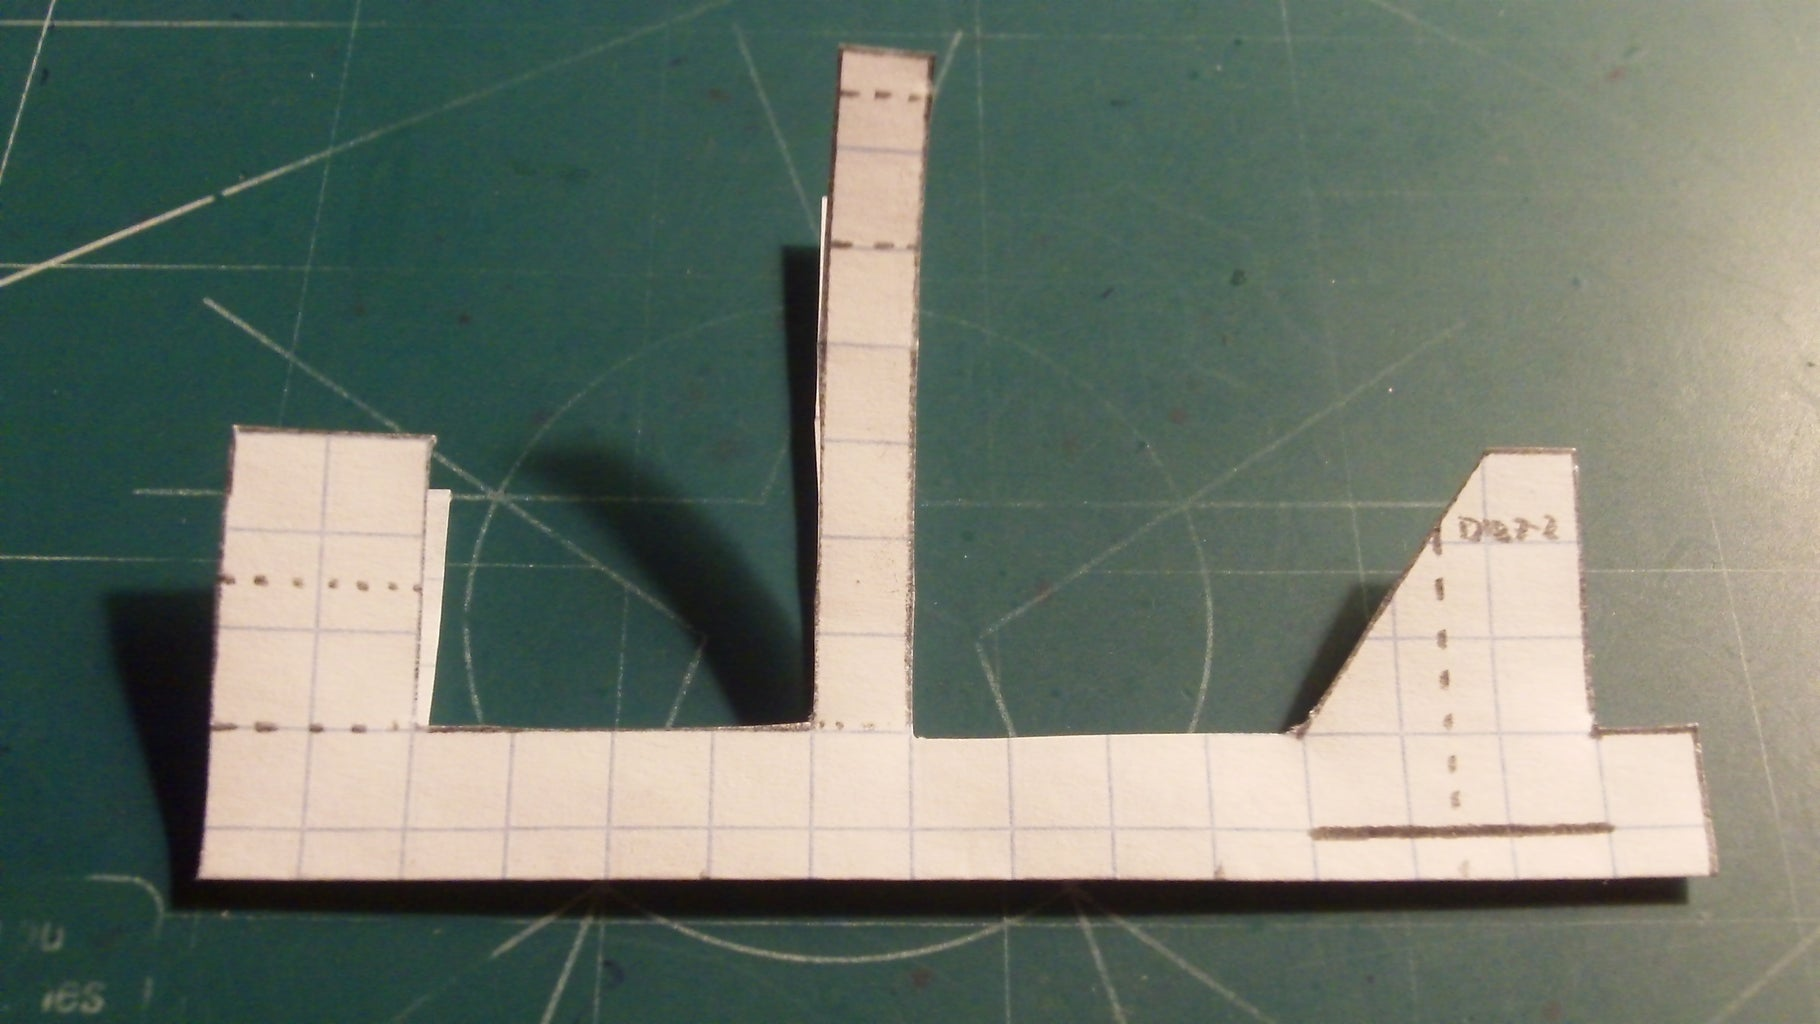 Making the Rudder and Making and Taping the Fuselage